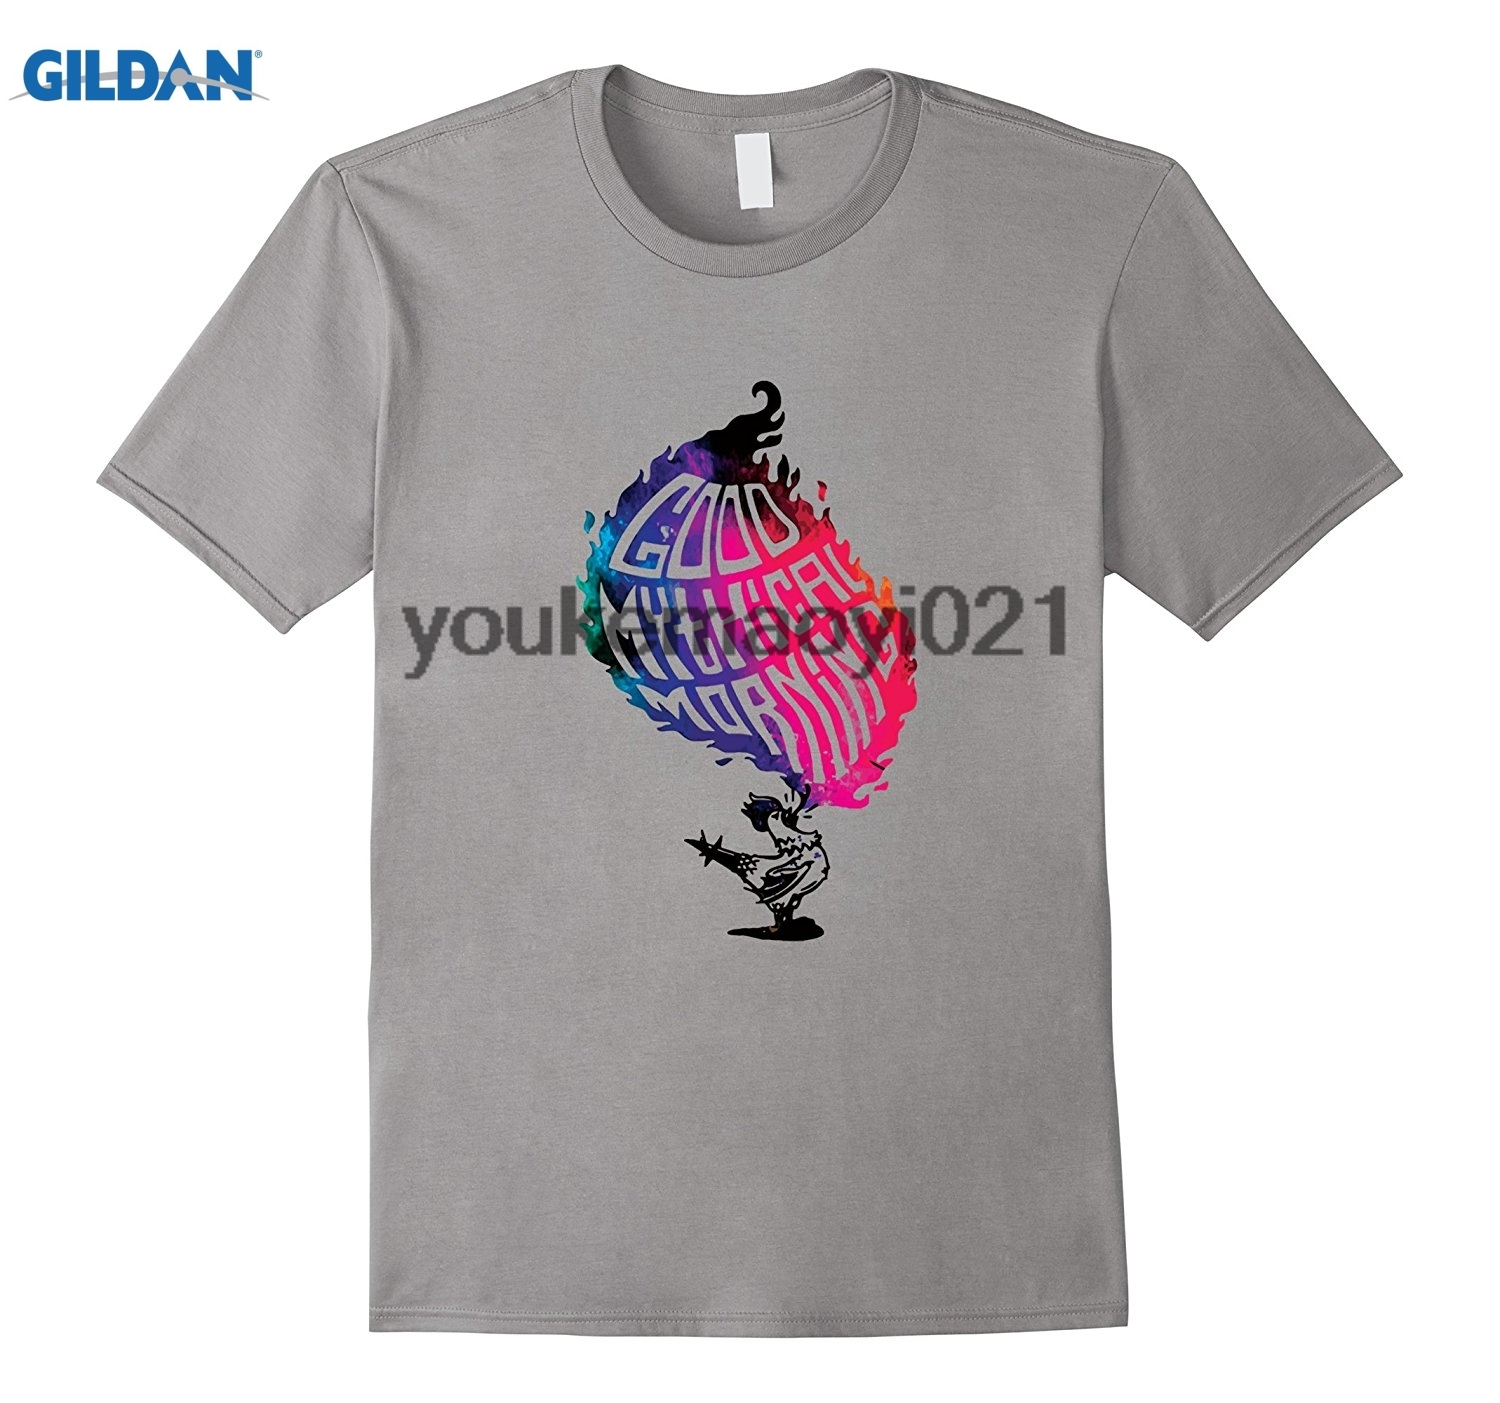 GILDAN Good Mythical Are Morning T Shirt Chicken Morning T Shirt